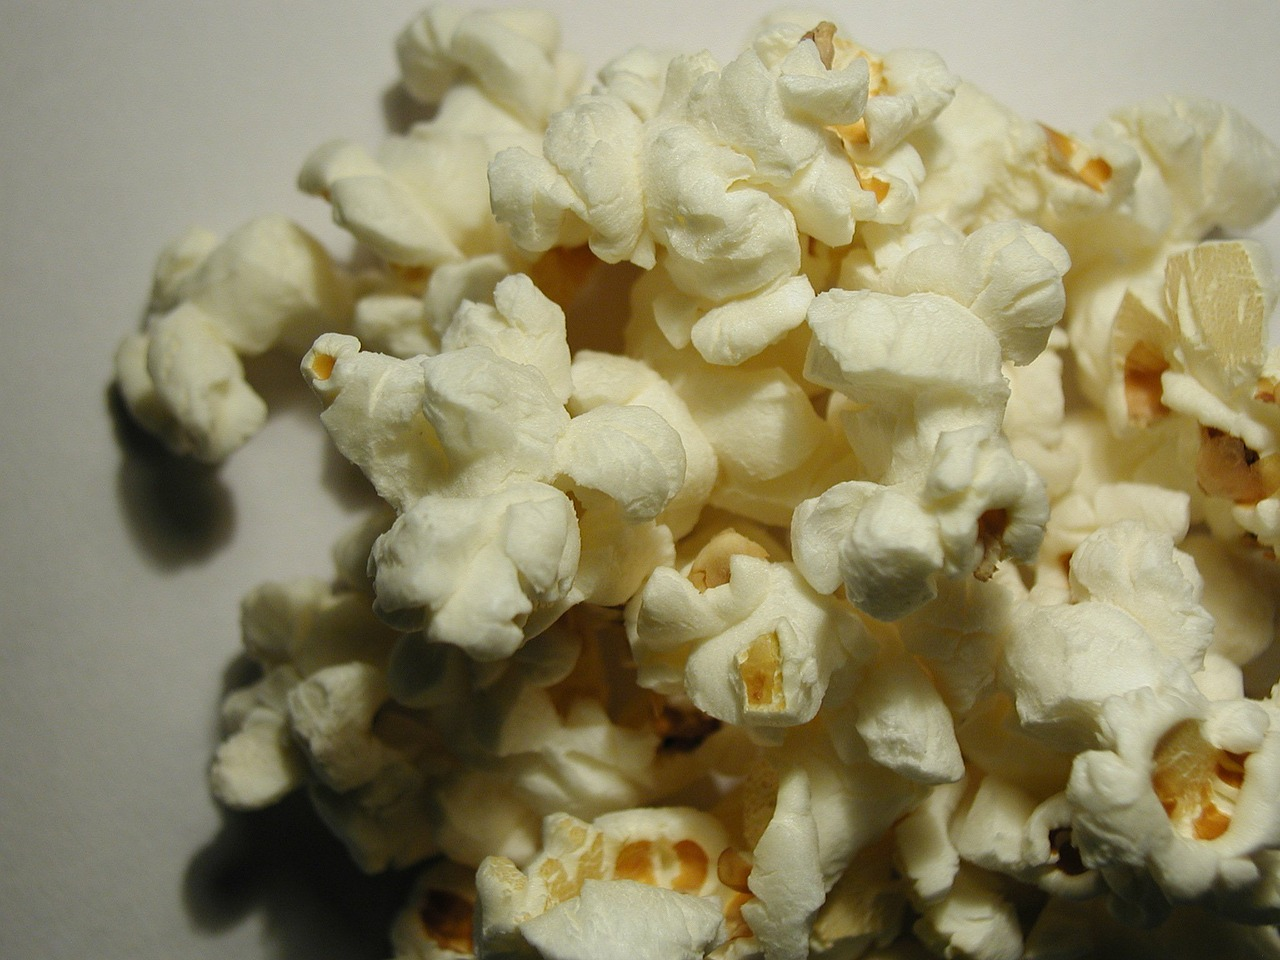 popcorn snack fast food free photo